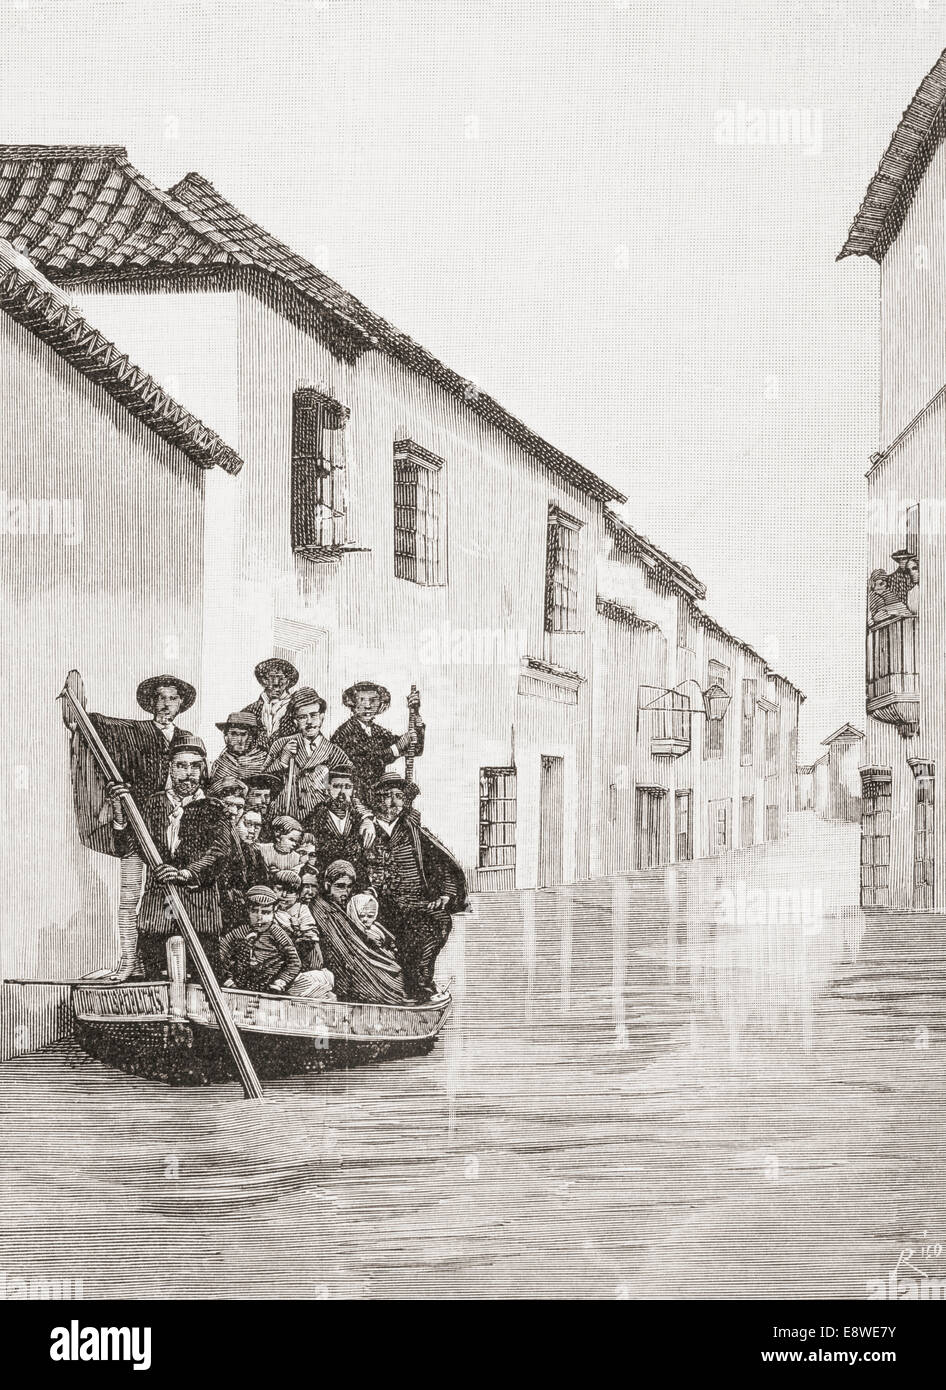 Seville, Spain. The mayor and his staff saving a family in the Calle Puente, under water during the terrible floods - Stock Image